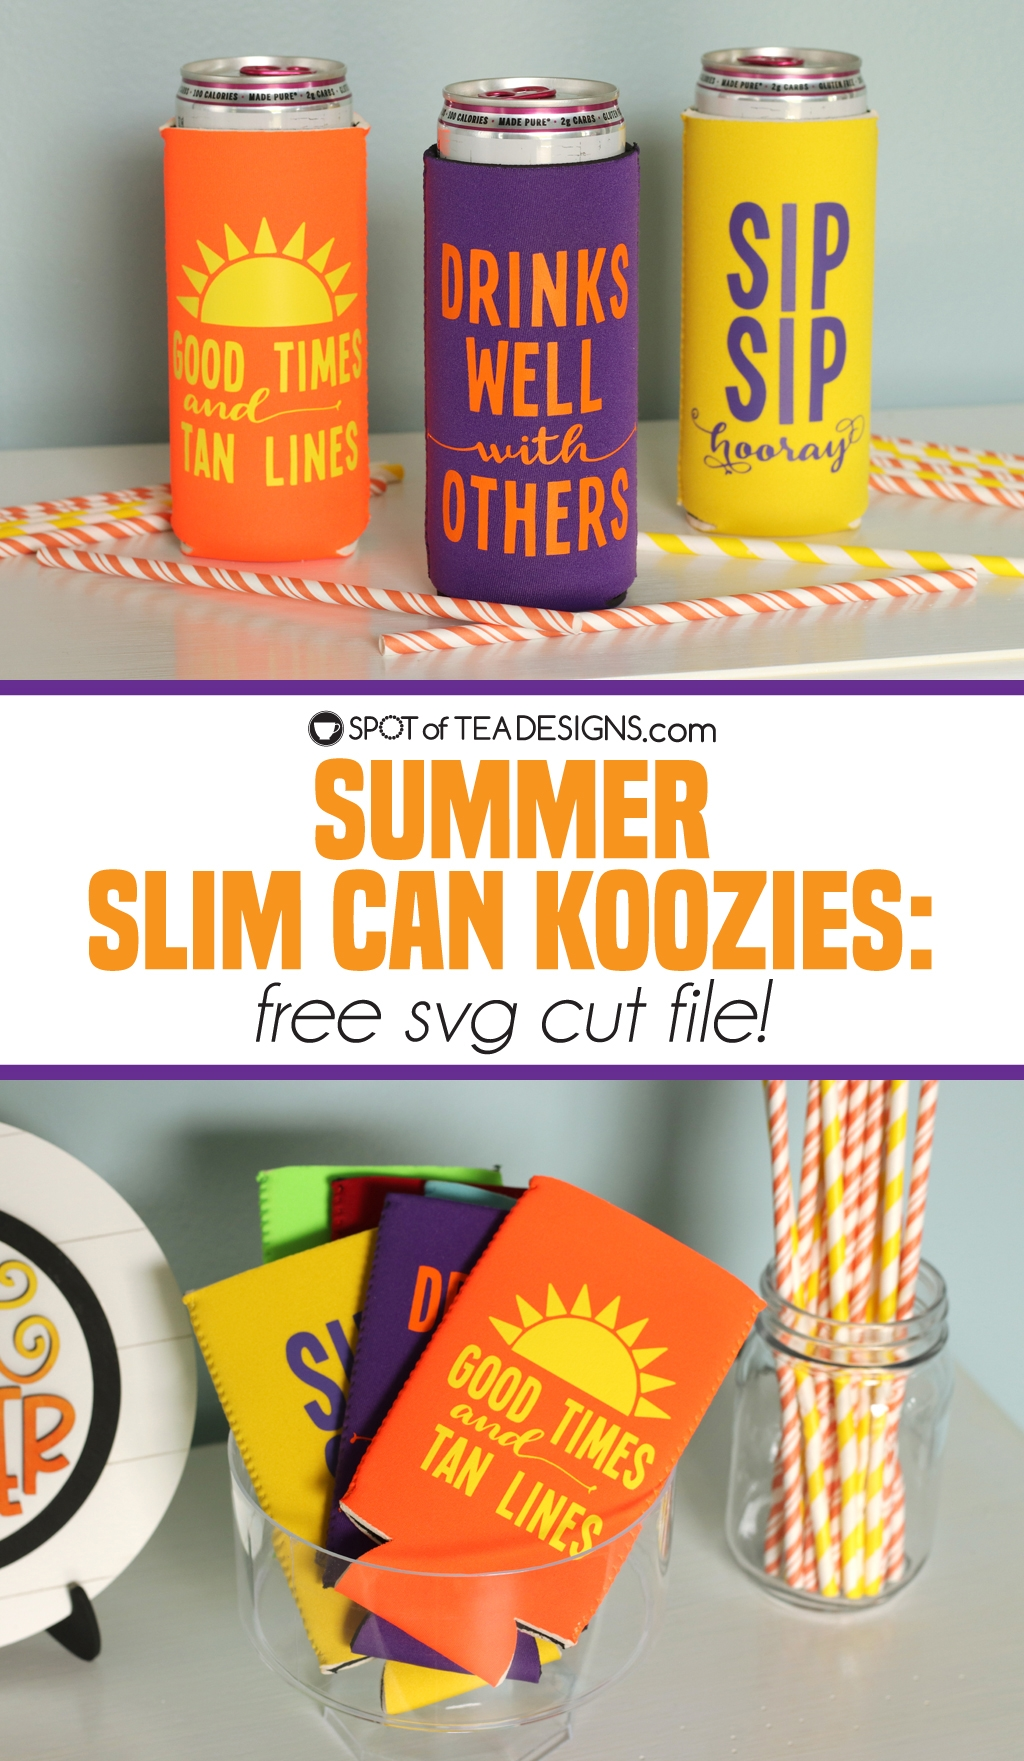 Summer slim can koozies with free svg cut file | spotofteadesigns.com